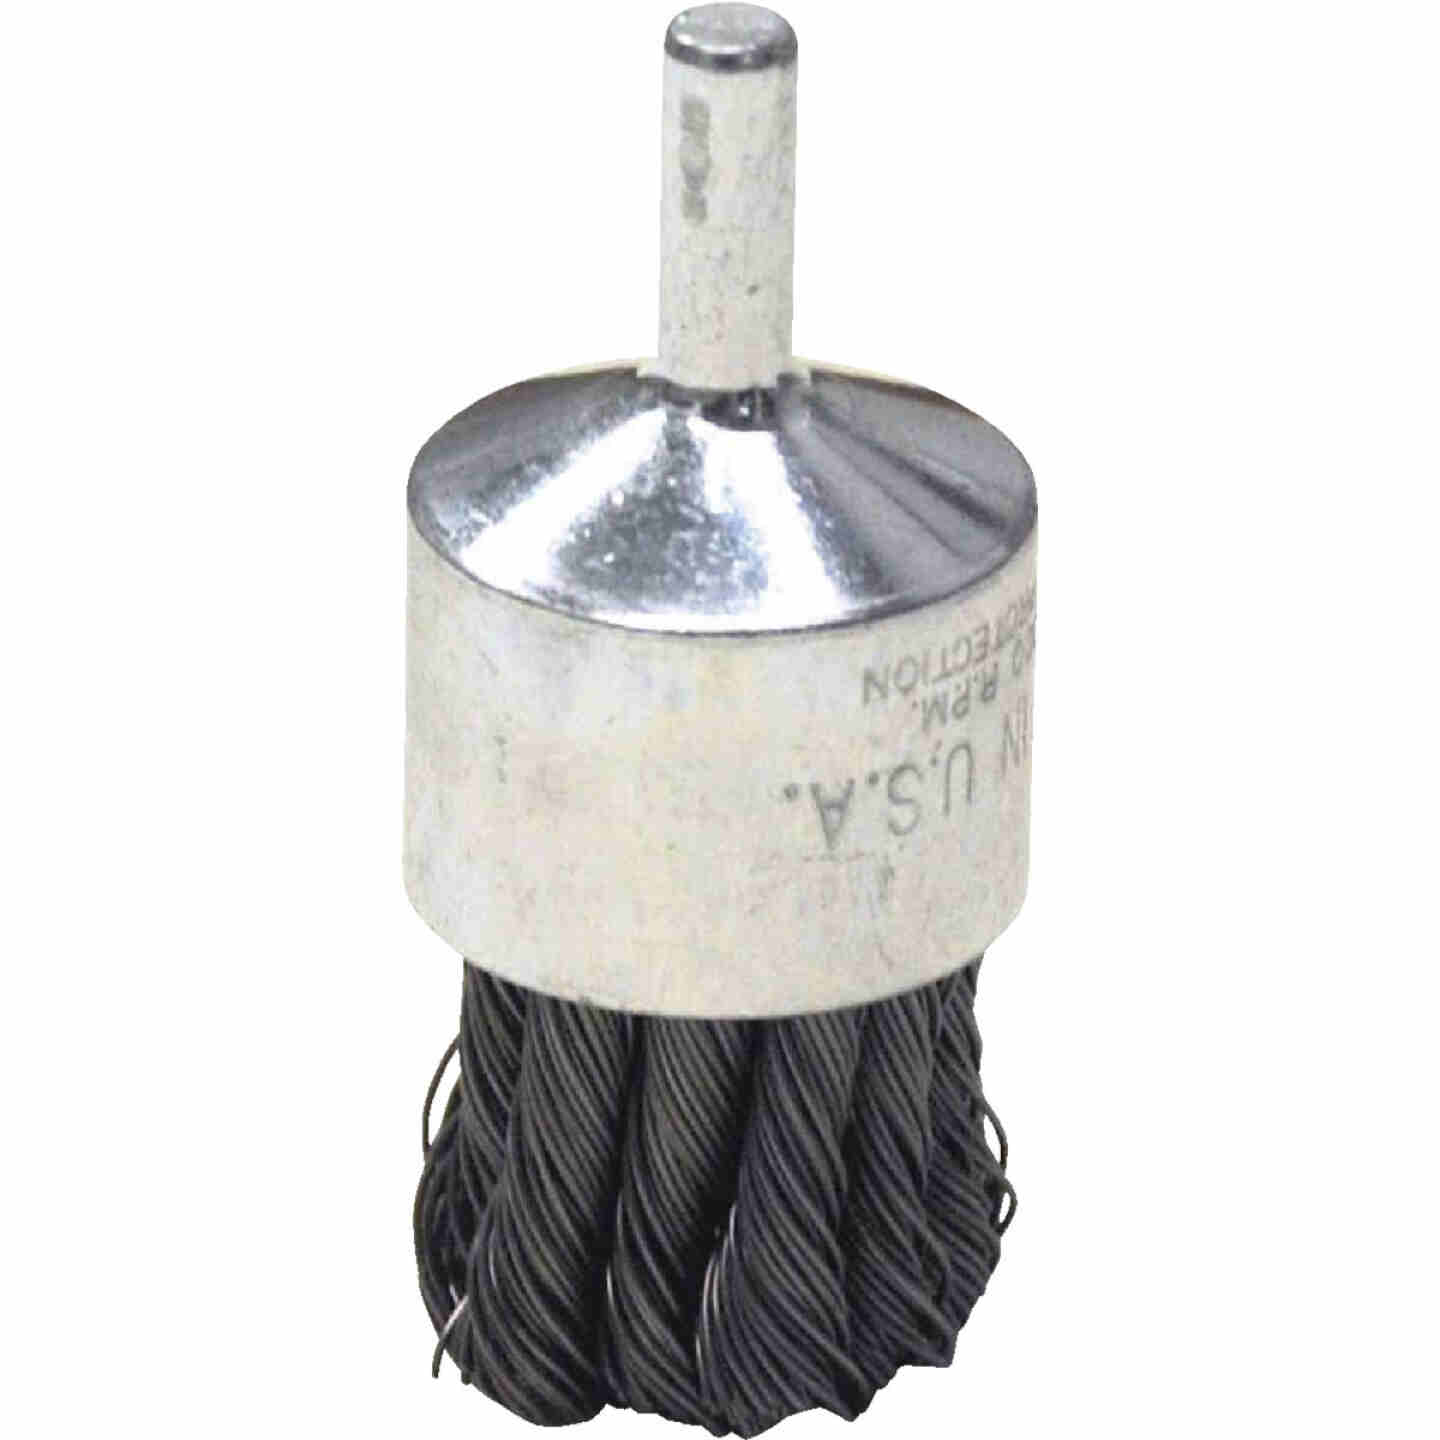 Weiler Vortec 1 In. Professional Shank-Mounted Drill-Mounted Wire Brush Image 1